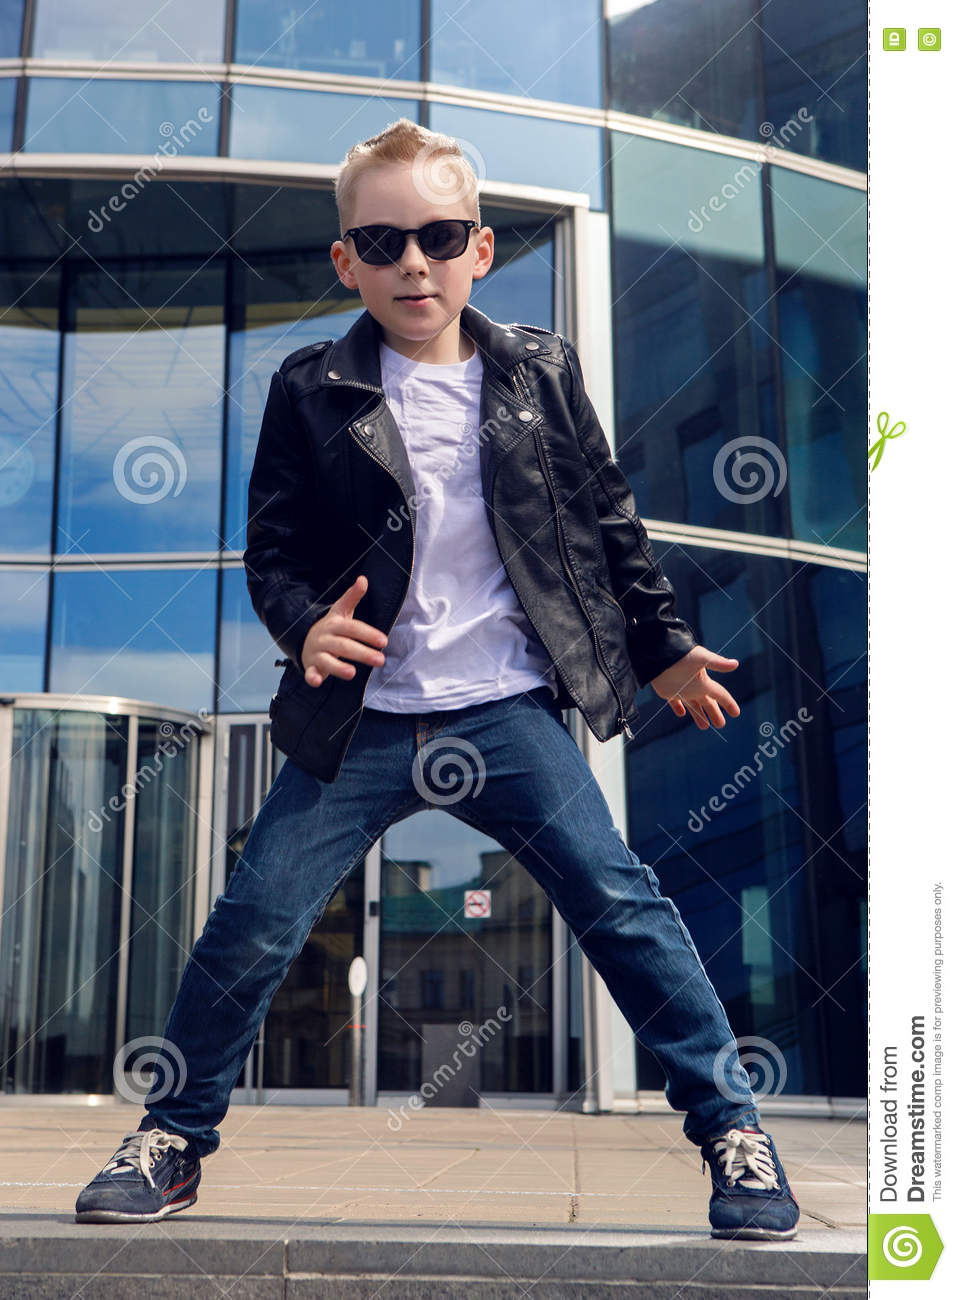 4f589aab1533 Baby Boy 7 - 8 Years In A Black Leather Jacket Dancing Stock Photo ...